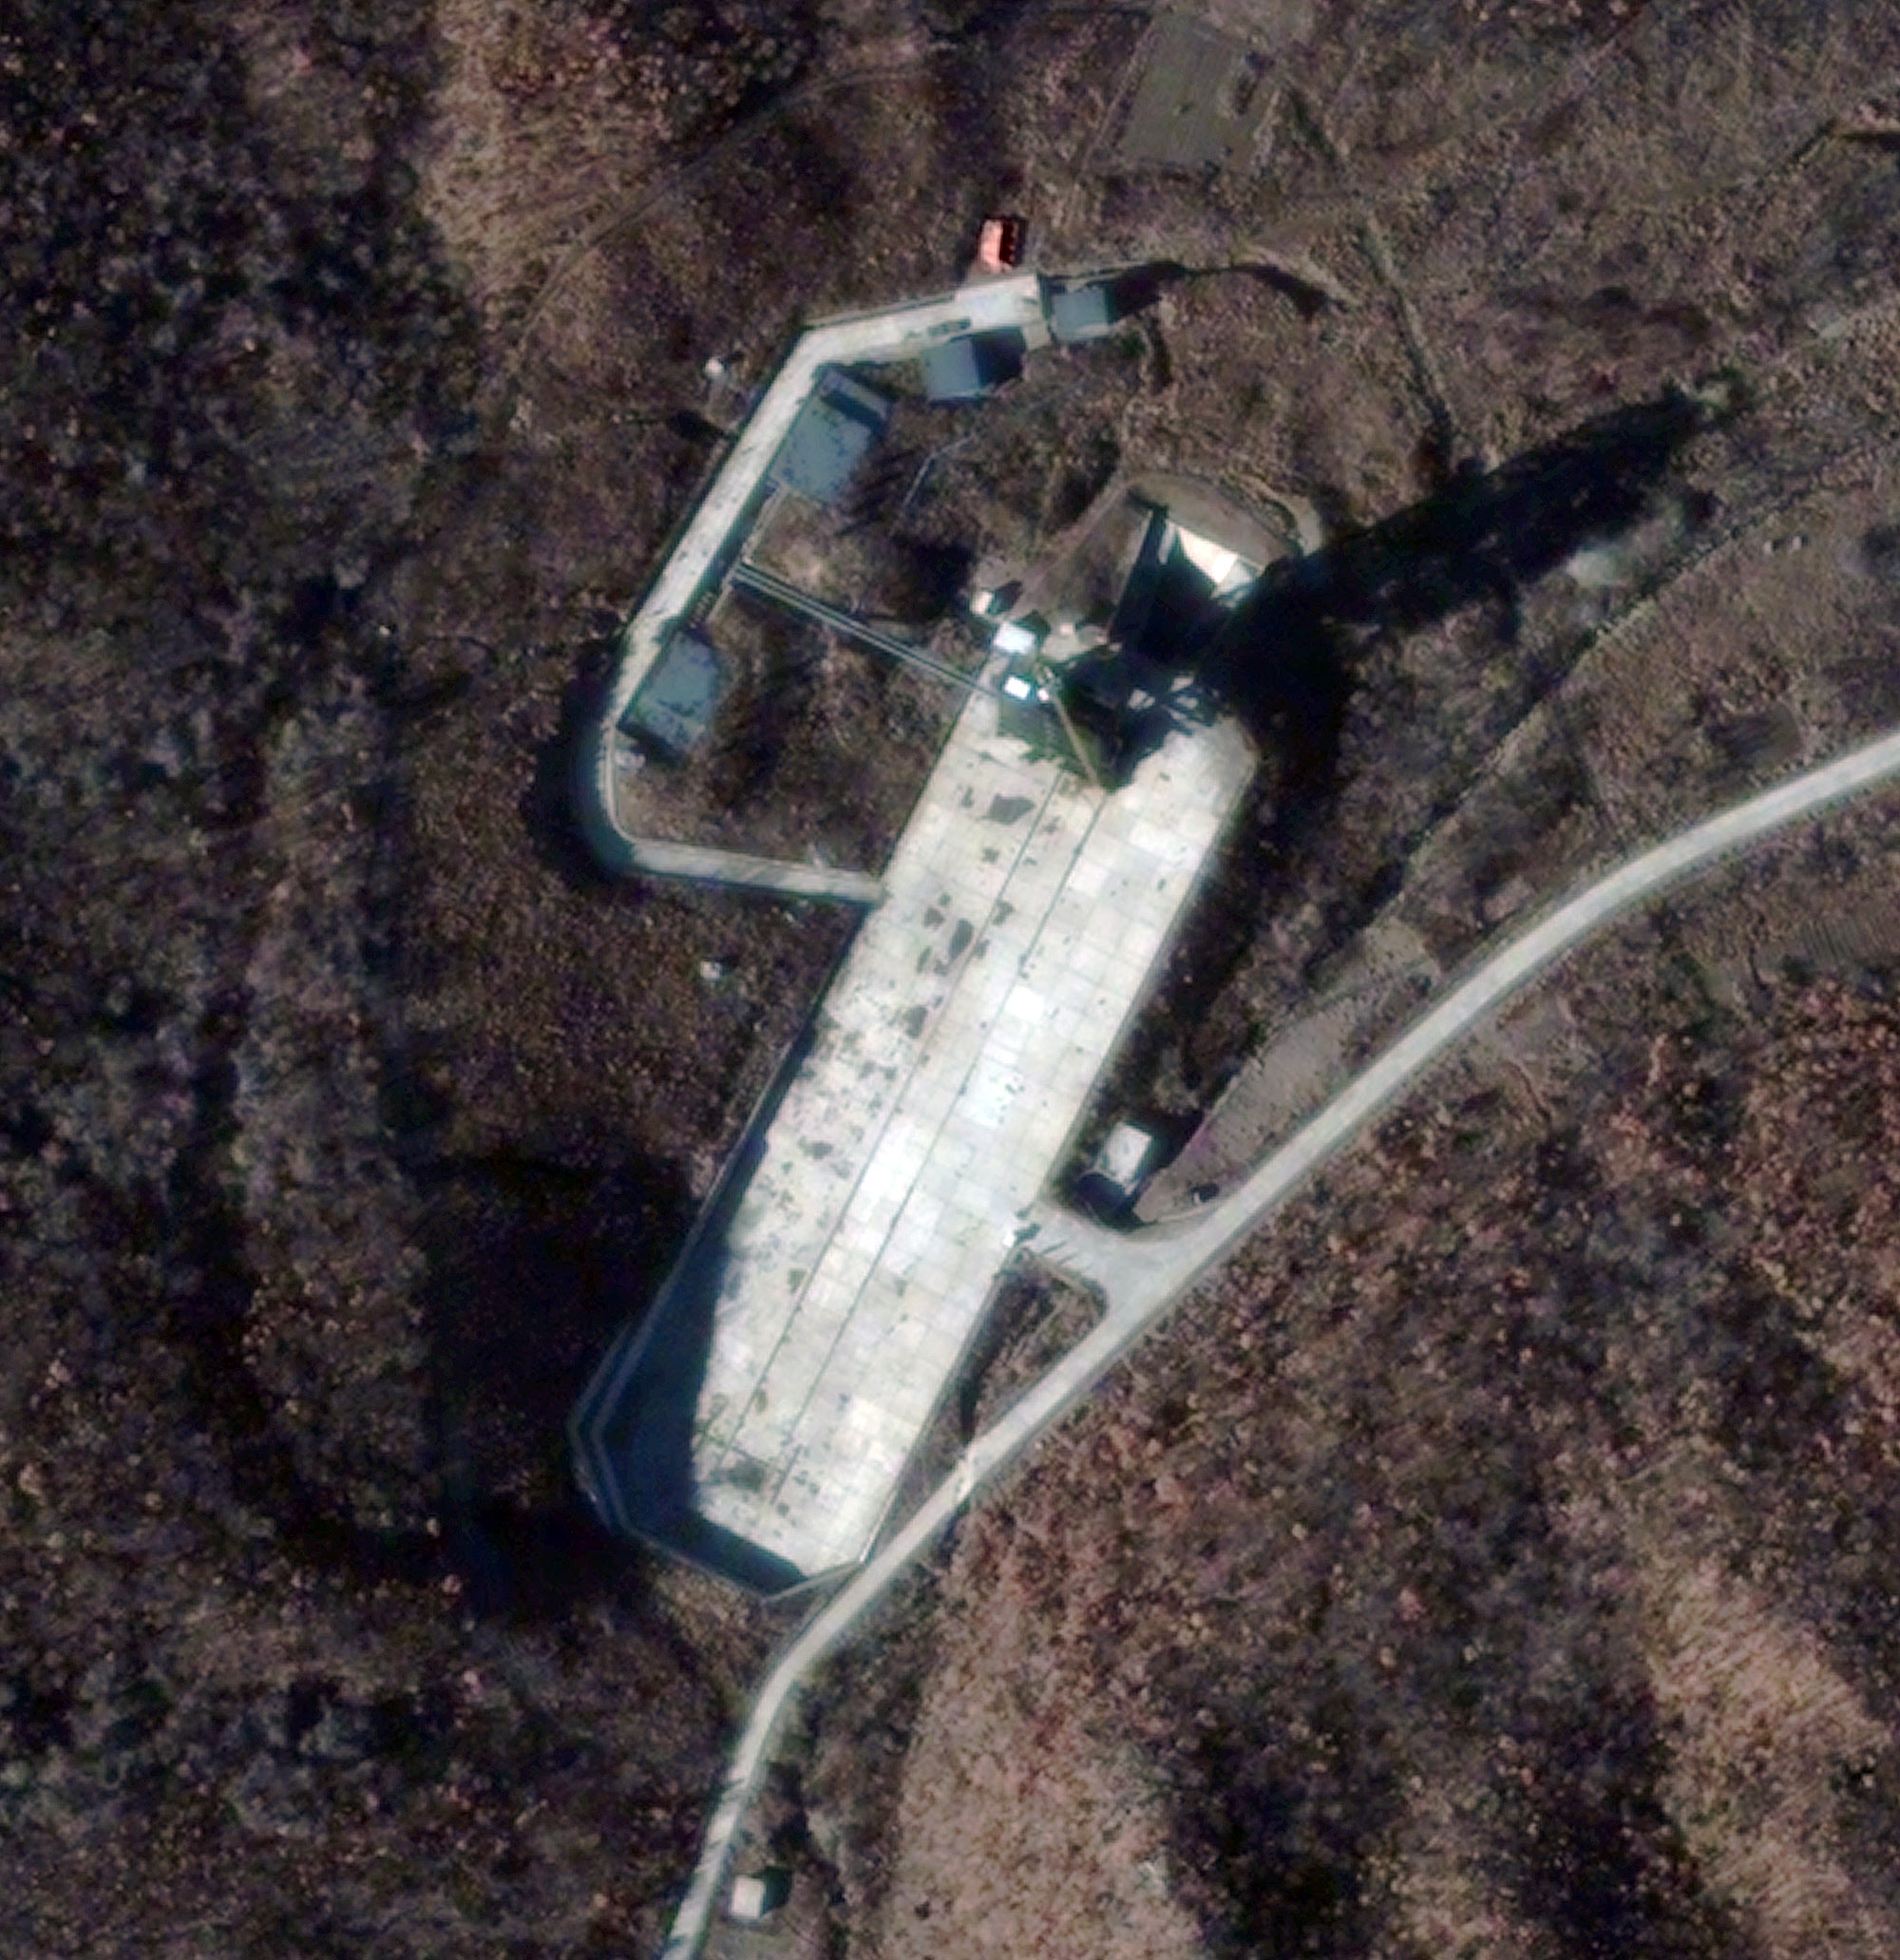 North Korea May Launch Rocket Soon, Satellite Photo Shows